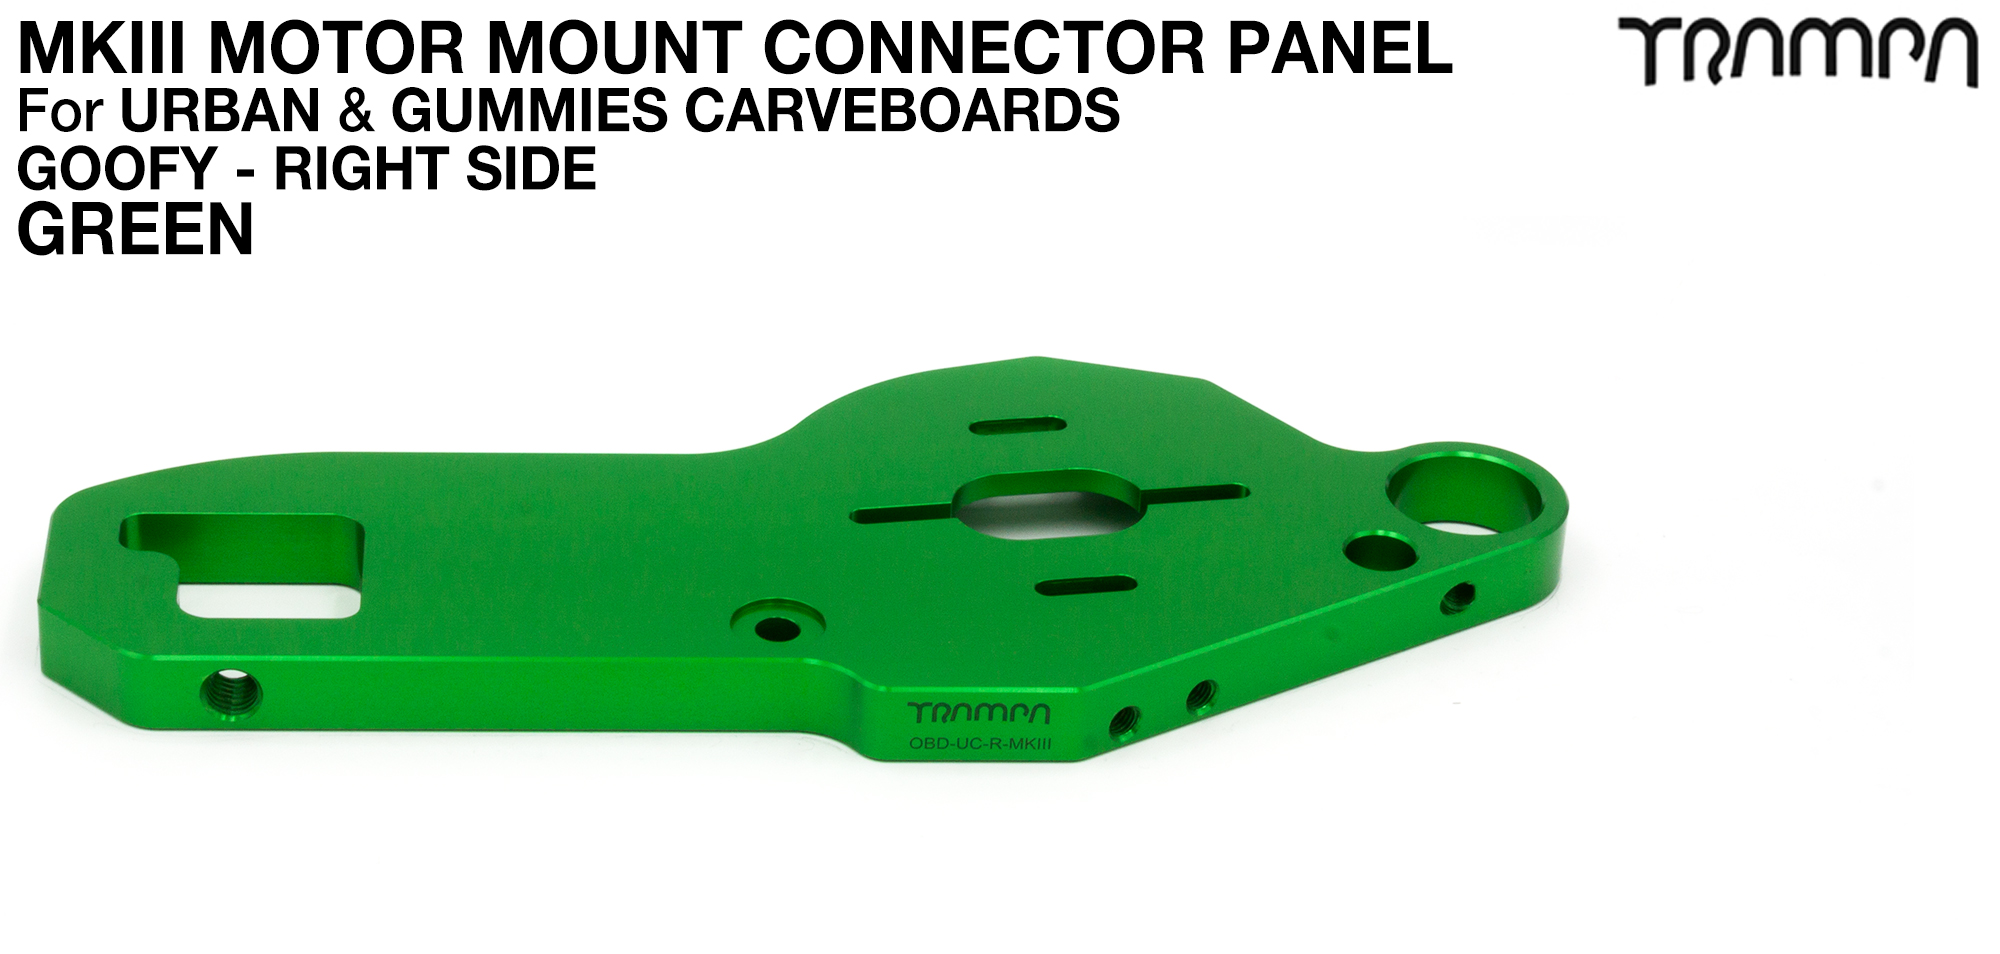 TWIN URBAN CARVE Motor Mount - GREEN